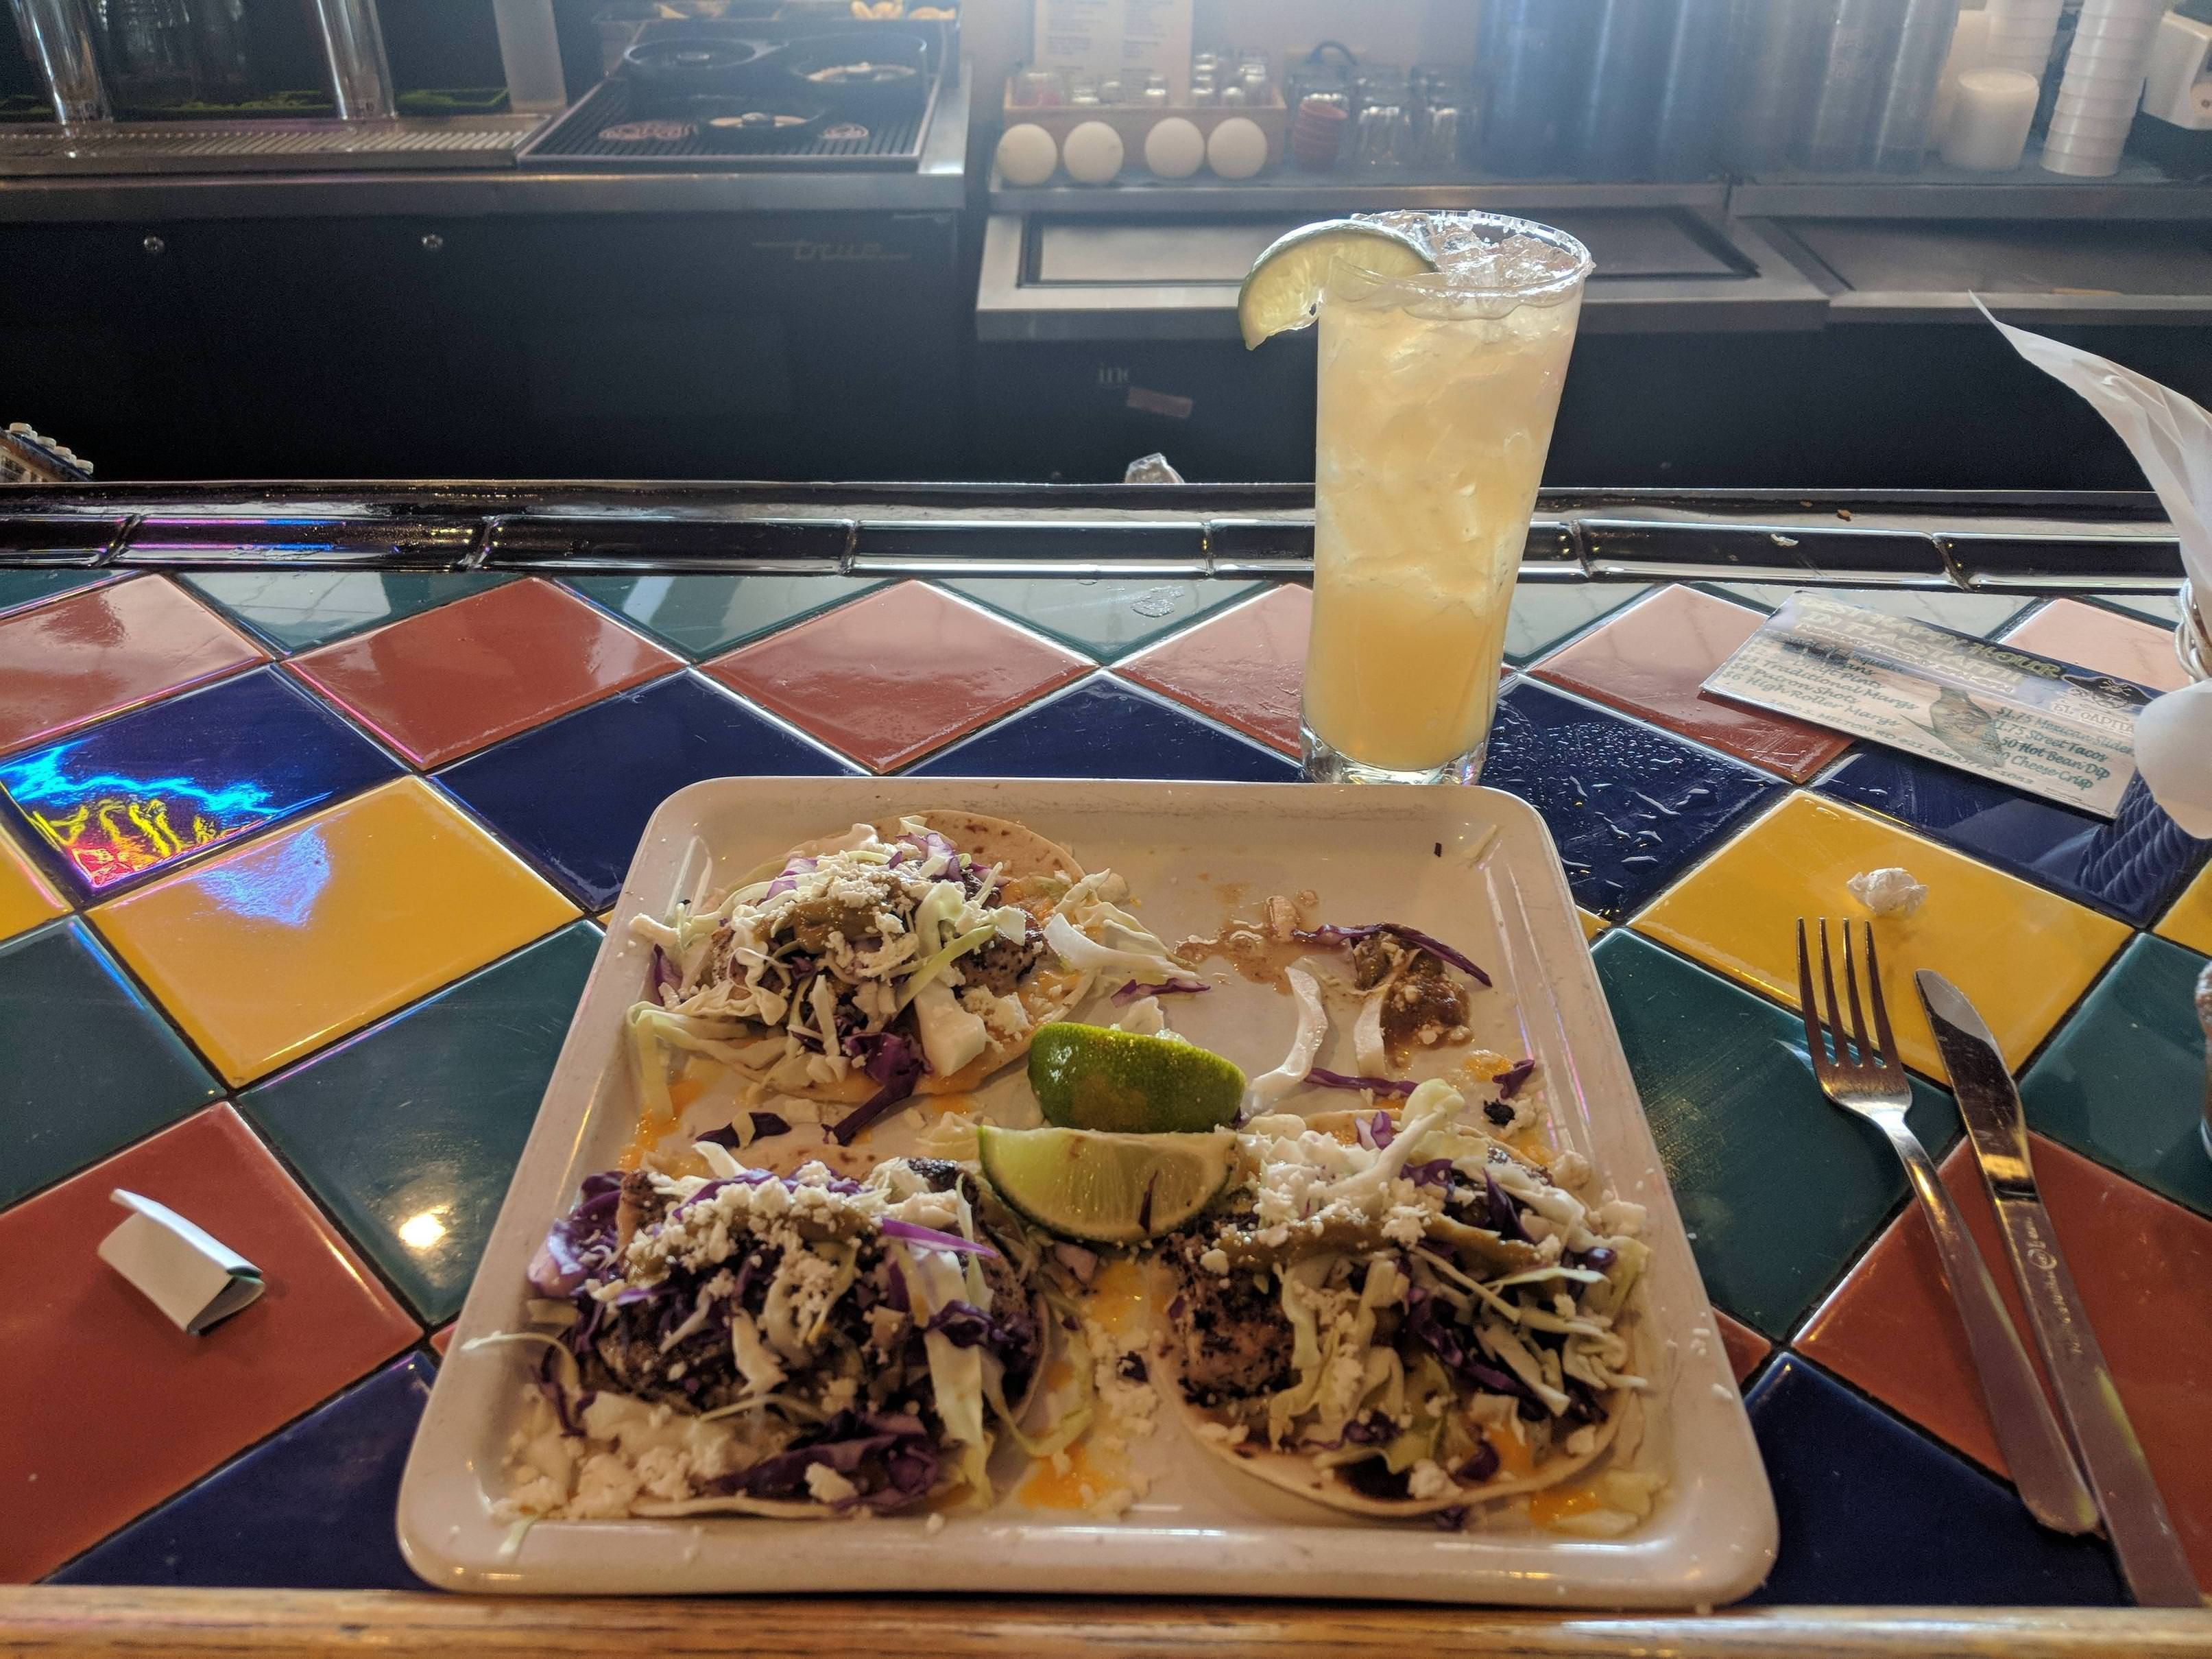 [I Ate] Thresher Shark Tacos (Shark week) Food Recipes #sharkweekfood [I Ate] Thresher Shark Tacos (Shark week) Food Recipes #sharkweekfood [I Ate] Thresher Shark Tacos (Shark week) Food Recipes #sharkweekfood [I Ate] Thresher Shark Tacos (Shark week) Food Recipes #sharkweekfood [I Ate] Thresher Shark Tacos (Shark week) Food Recipes #sharkweekfood [I Ate] Thresher Shark Tacos (Shark week) Food Recipes #sharkweekfood [I Ate] Thresher Shark Tacos (Shark week) Food Recipes #sharkweekfood [I Ate] Th #sharkweekfood